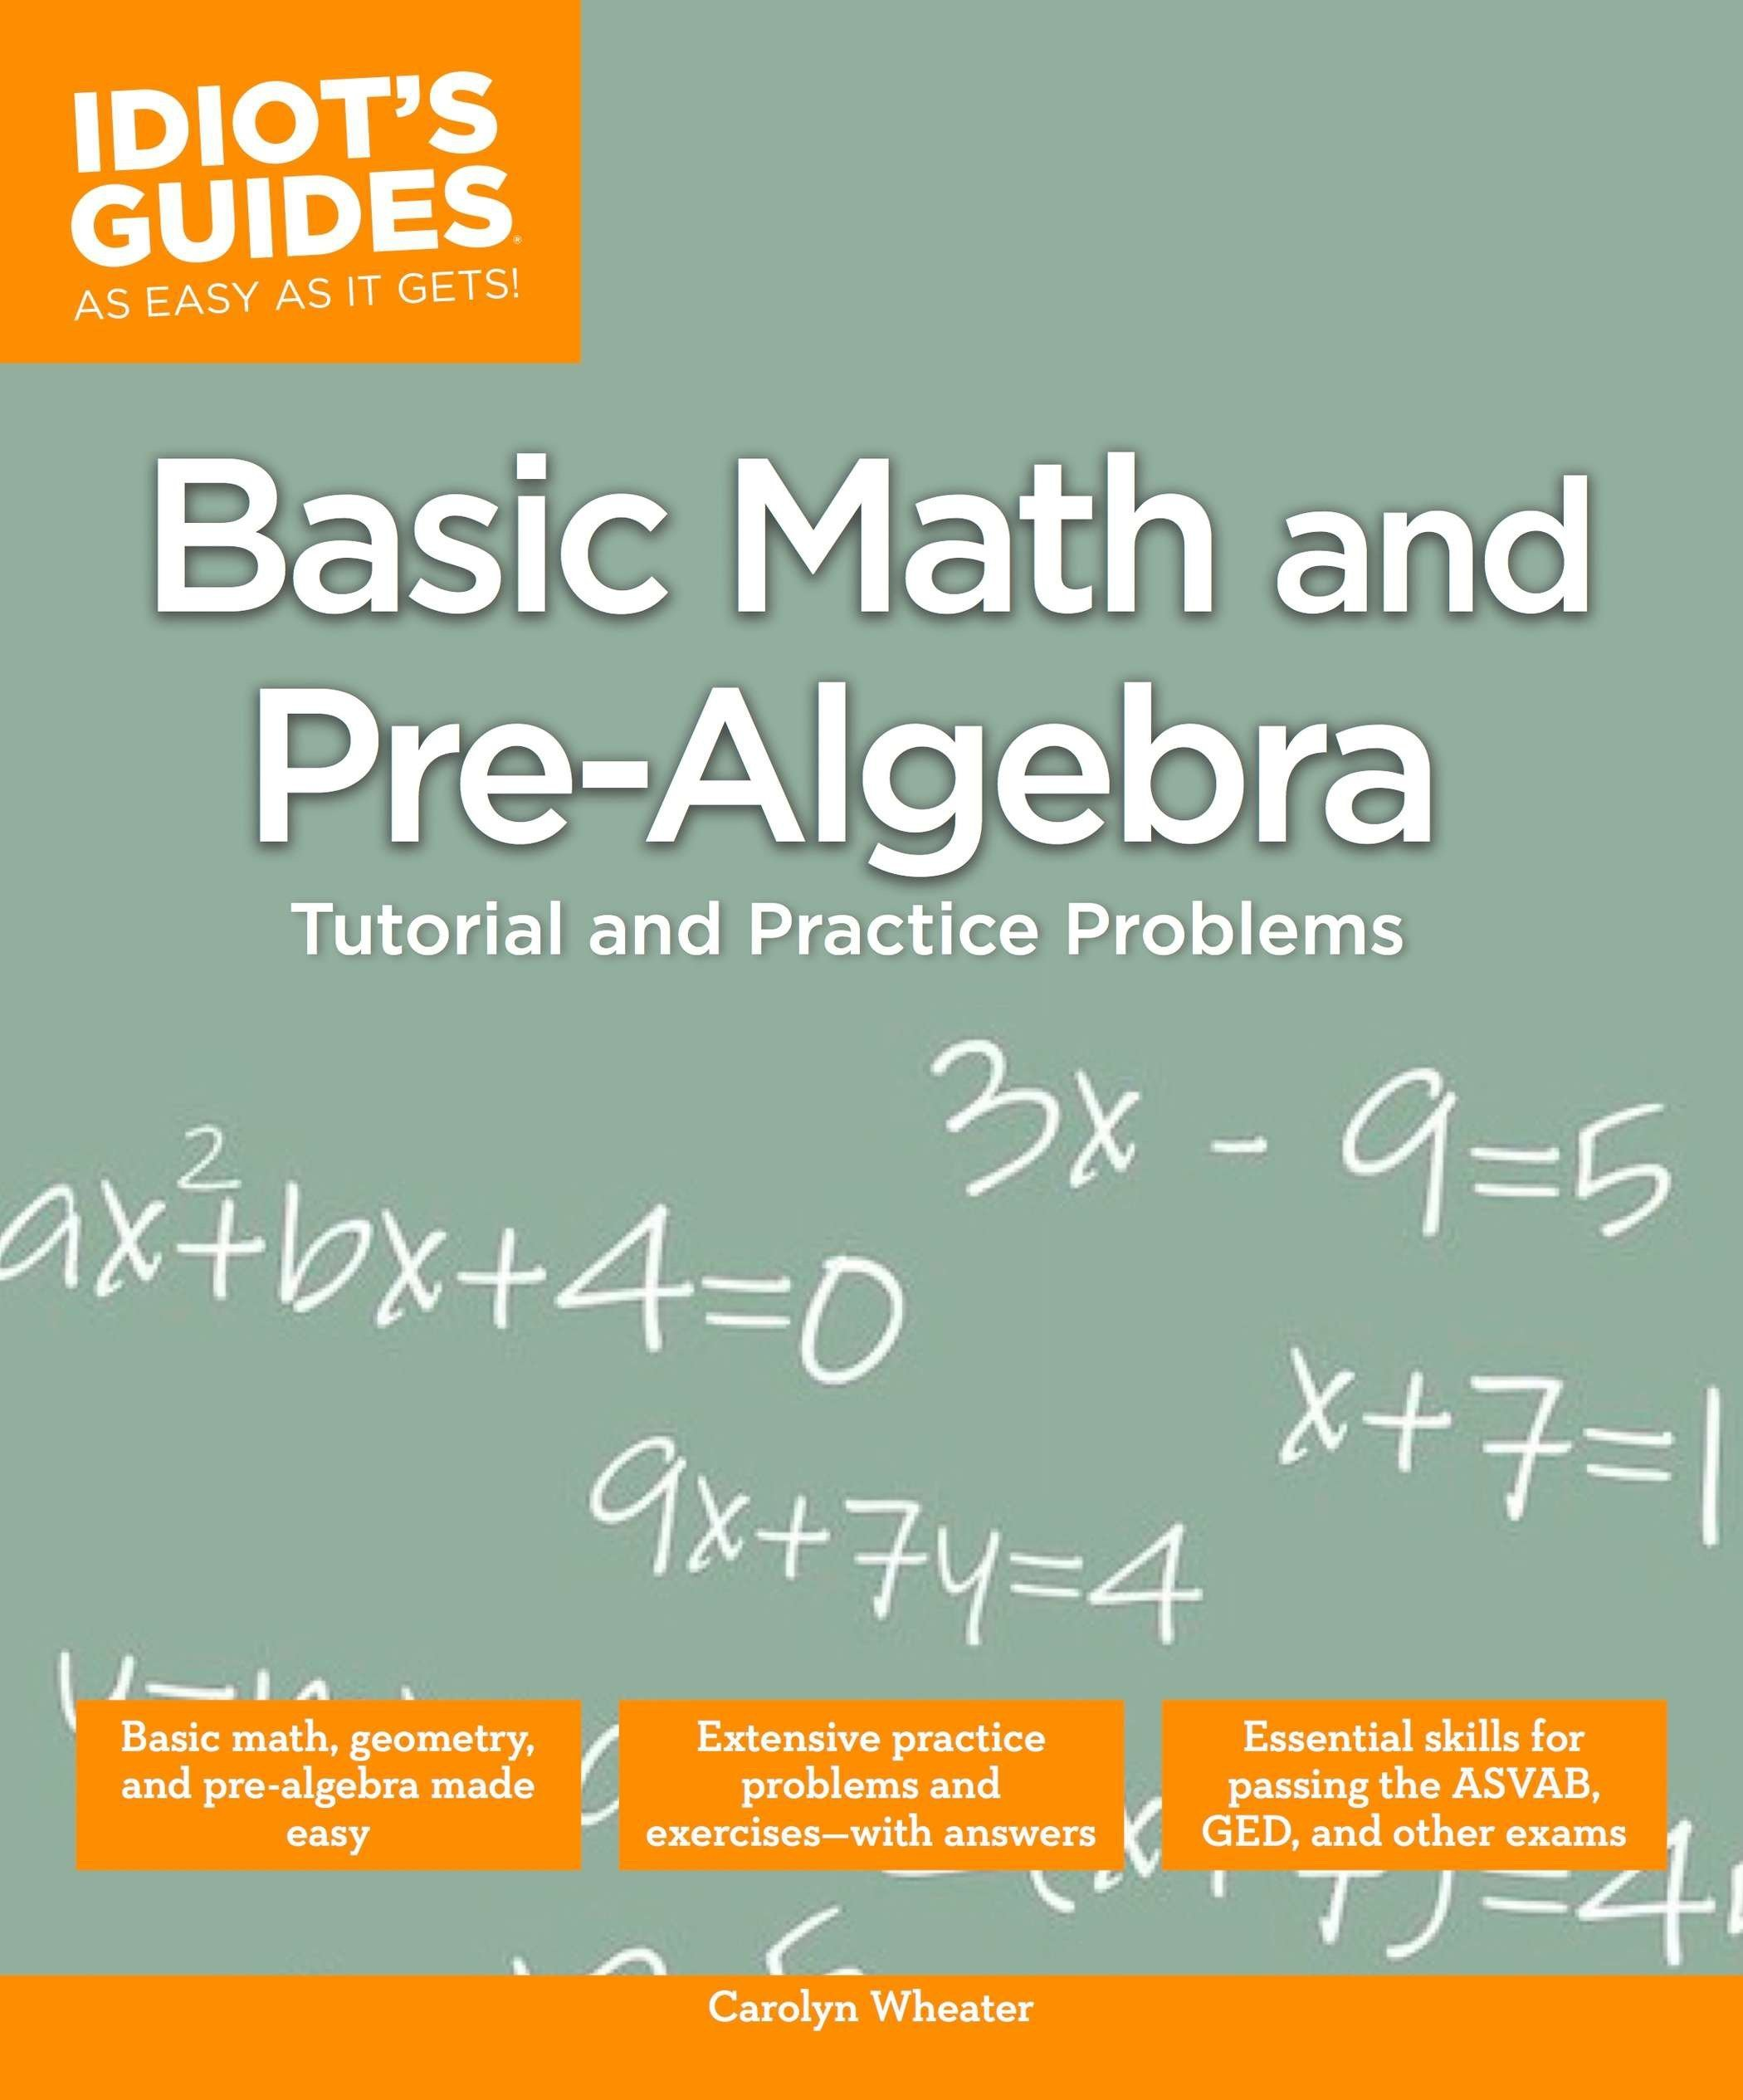 Basic Math and Pre-Algebra (Idiot's Guides): Carolyn Wheater:  9781615645046: Amazon.com: Books